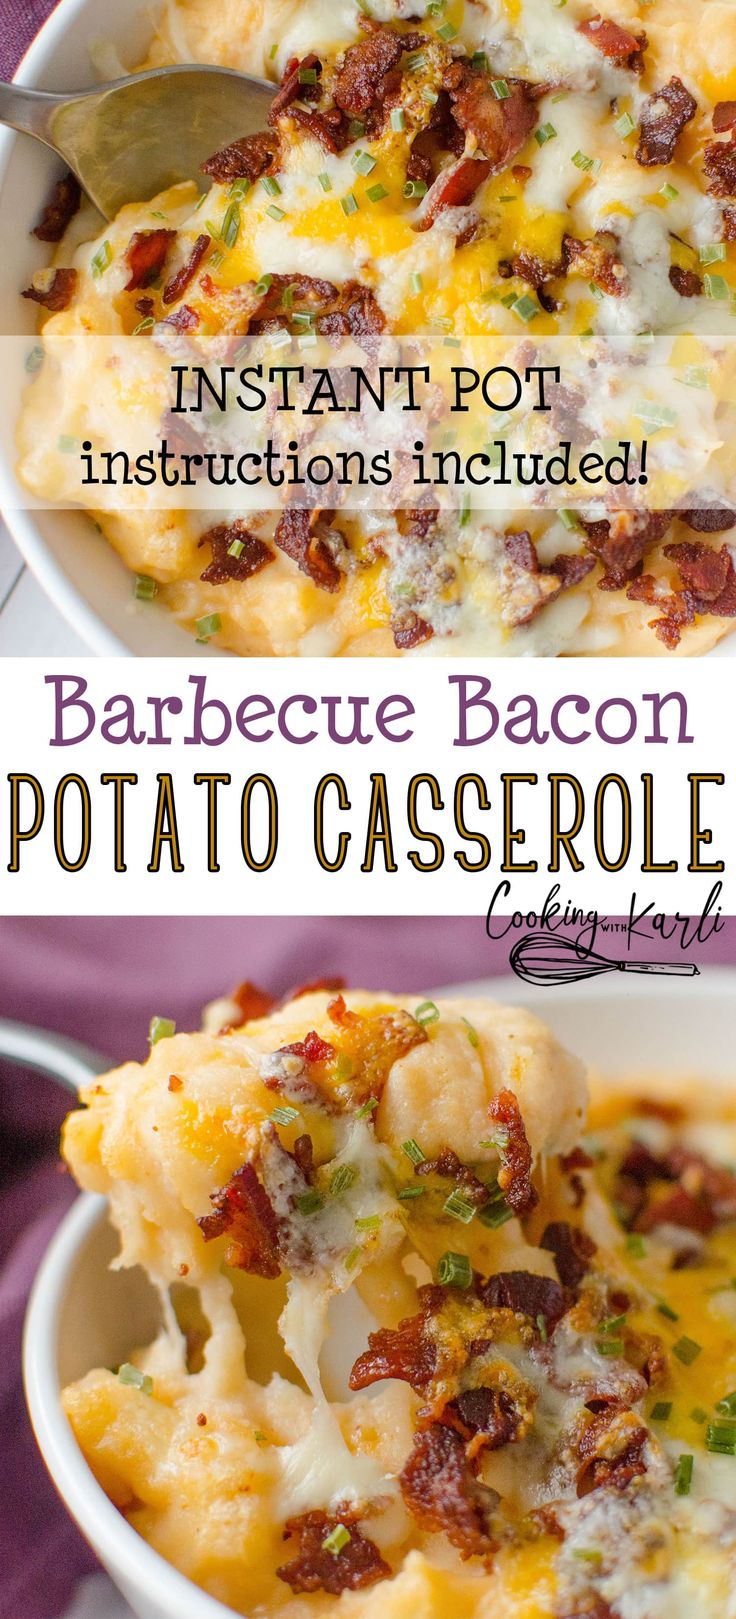 Barbecue Bacon Potato Casserole is a smokey twist on the classic twice baked potato. The creamy mashed potatoes are hit with a some barbecue sauce  to give the potatoes a whole new dimension. Bacon and cheese are broiled on the top until it reaches melty perfection. #instantpot #recipe #twicebakedpotatoes #potato #sidedish